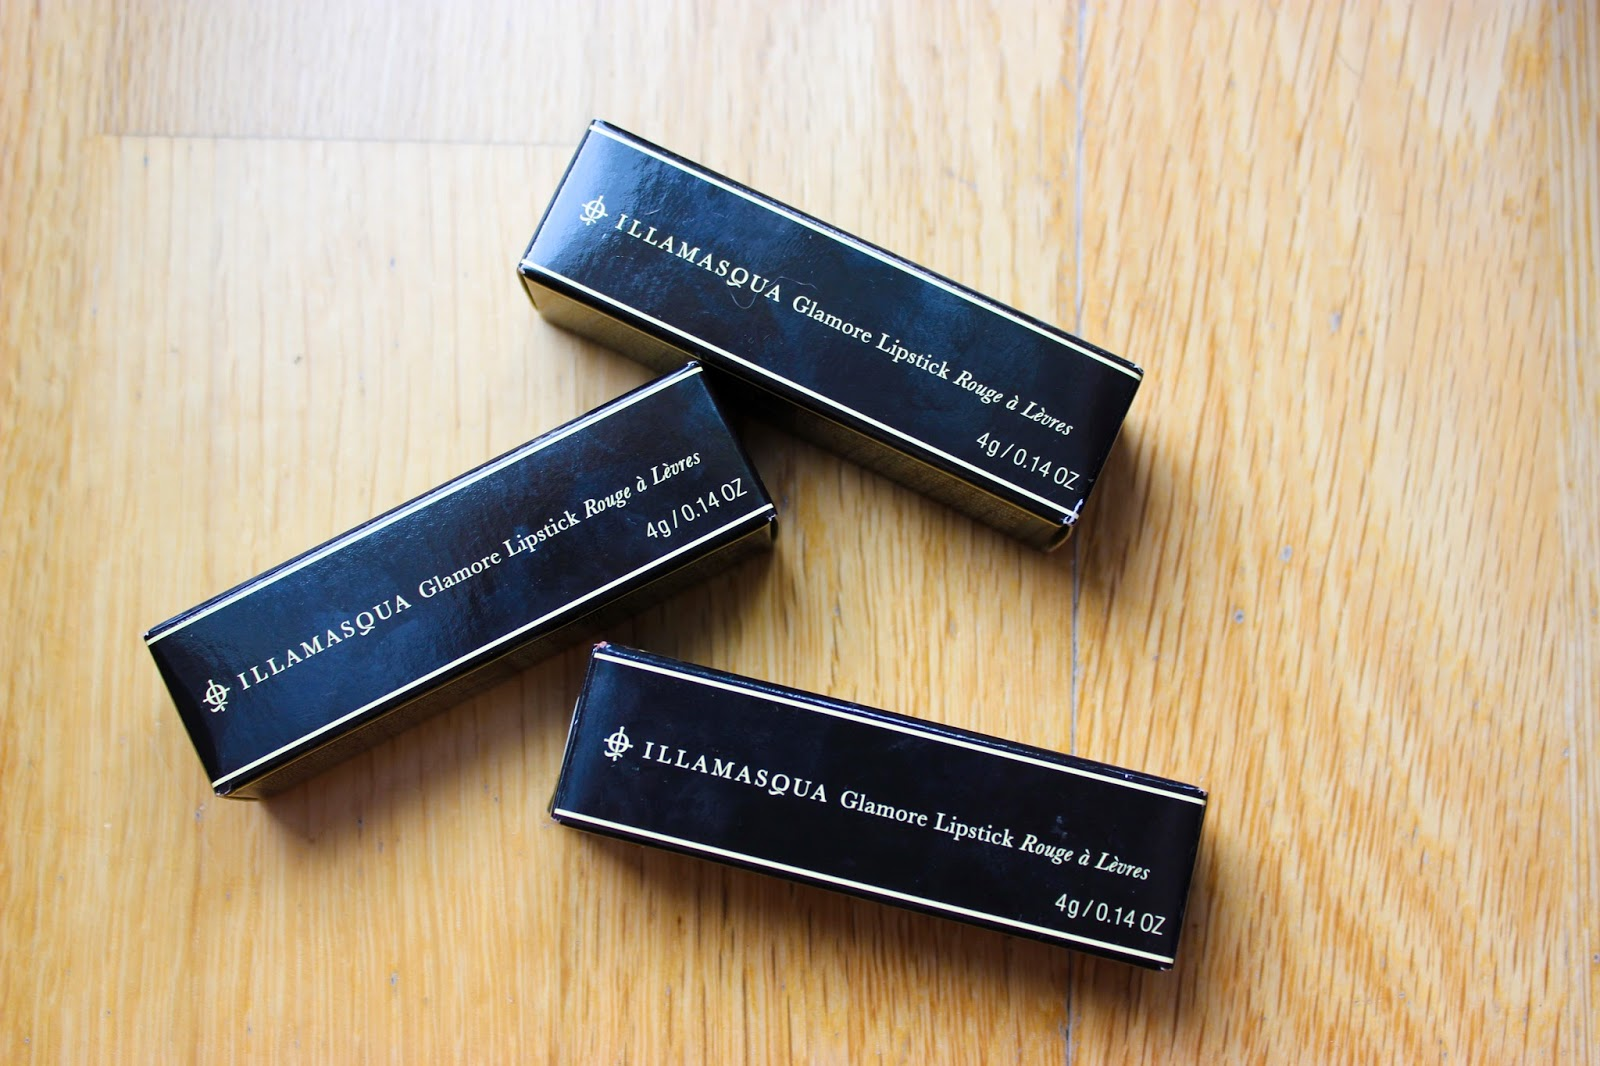 illamasqua glamore lipstick buff soaked vampette discoveries of self nc50 swatches